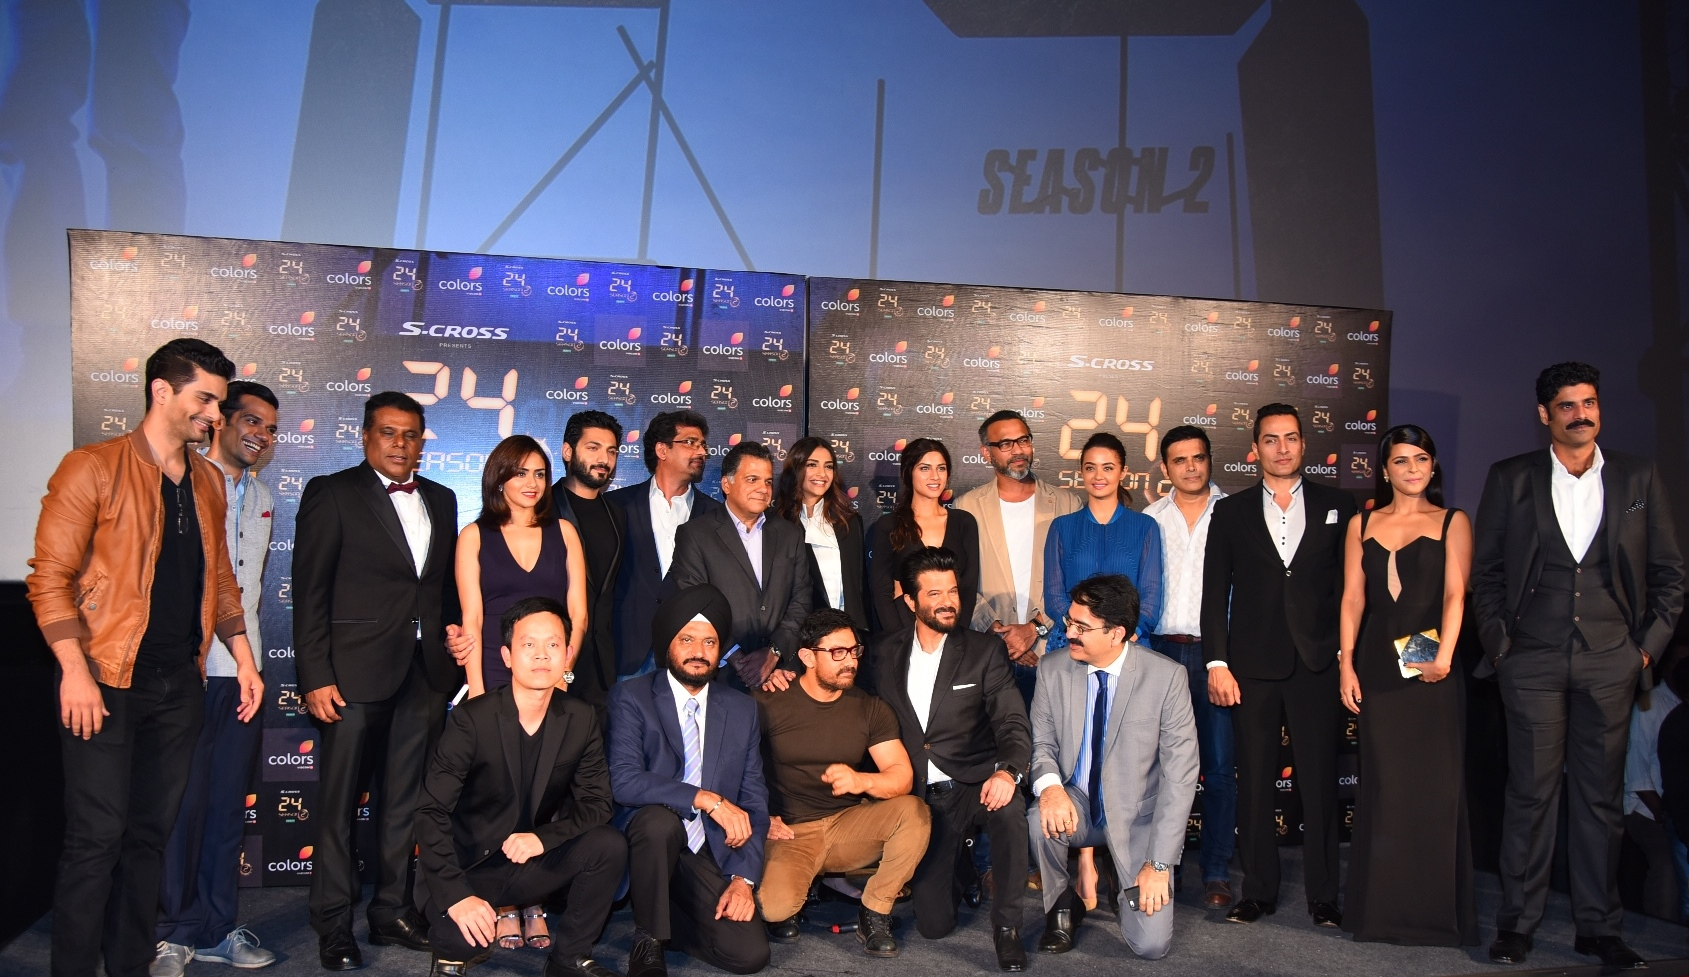 Anil kapoor 24 serial season 2 star cast first look